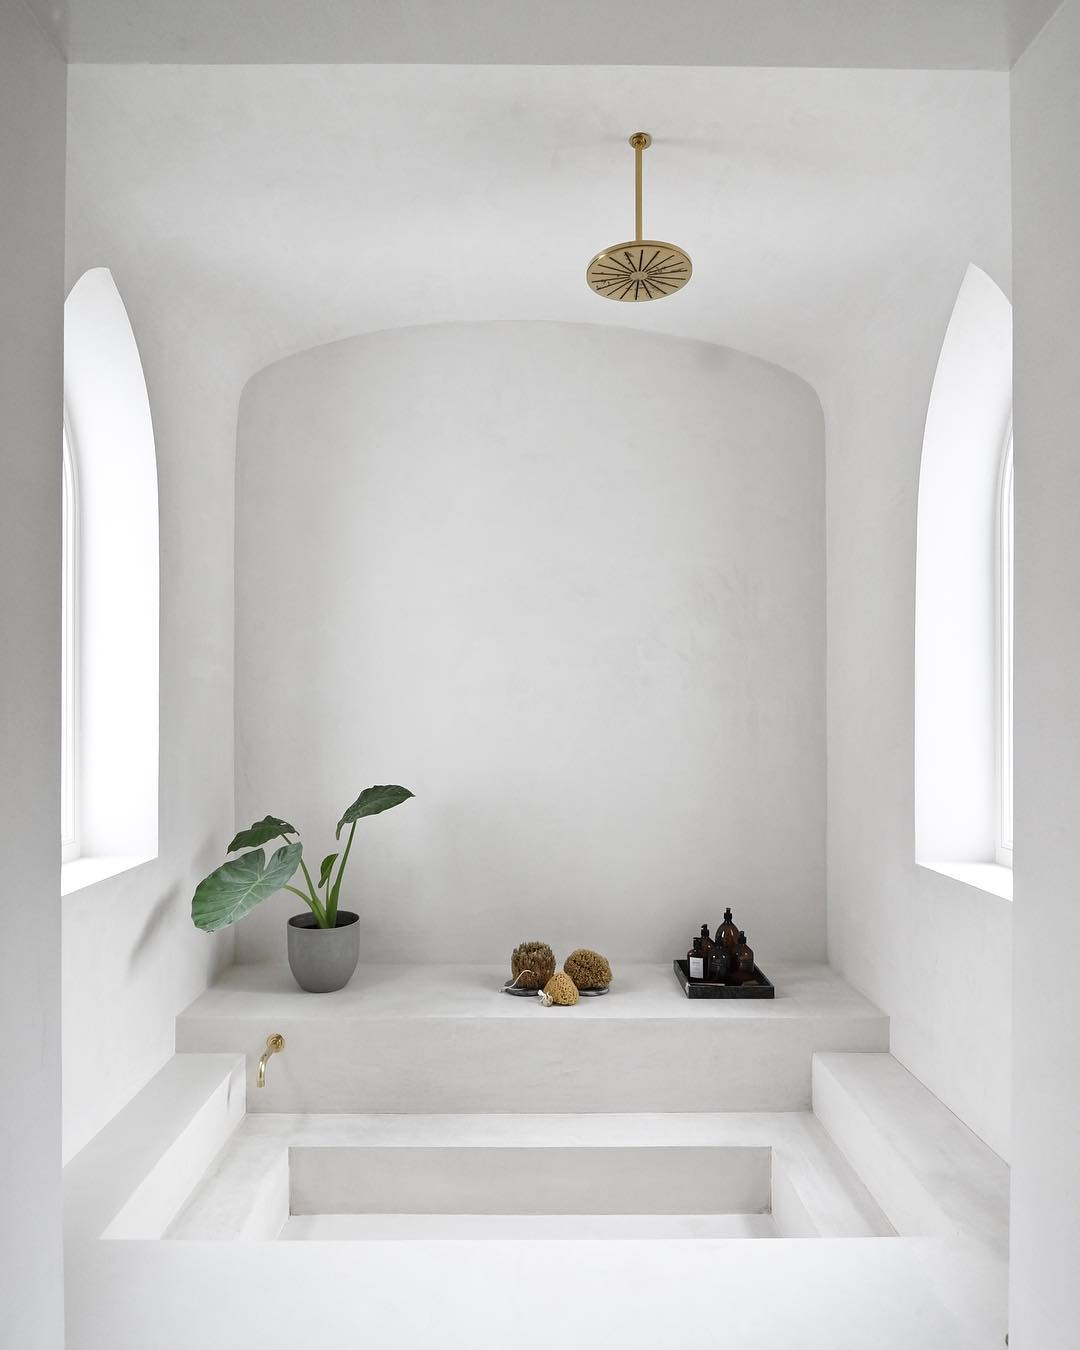 ilaria fatone - summer-mood - minimal bathroom